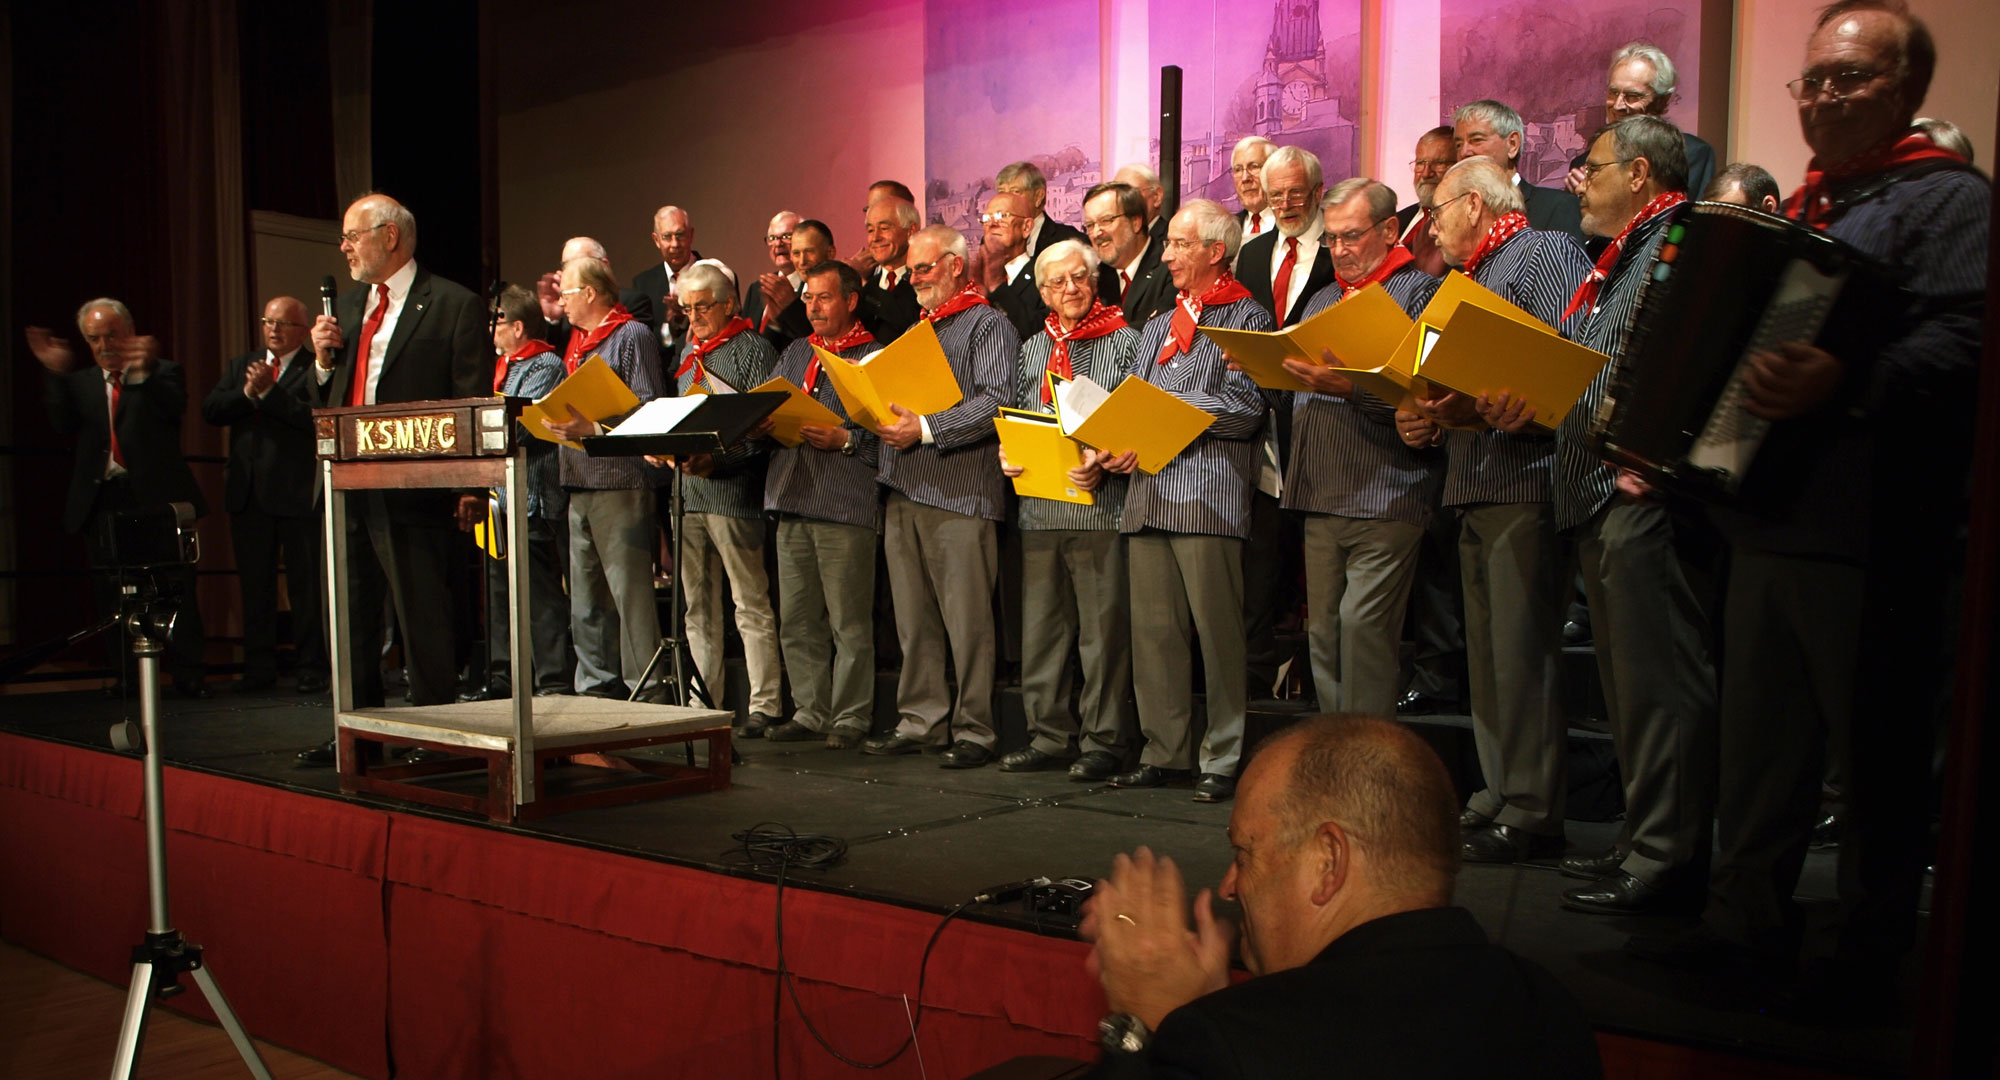 Rinteln Male Voice Choir